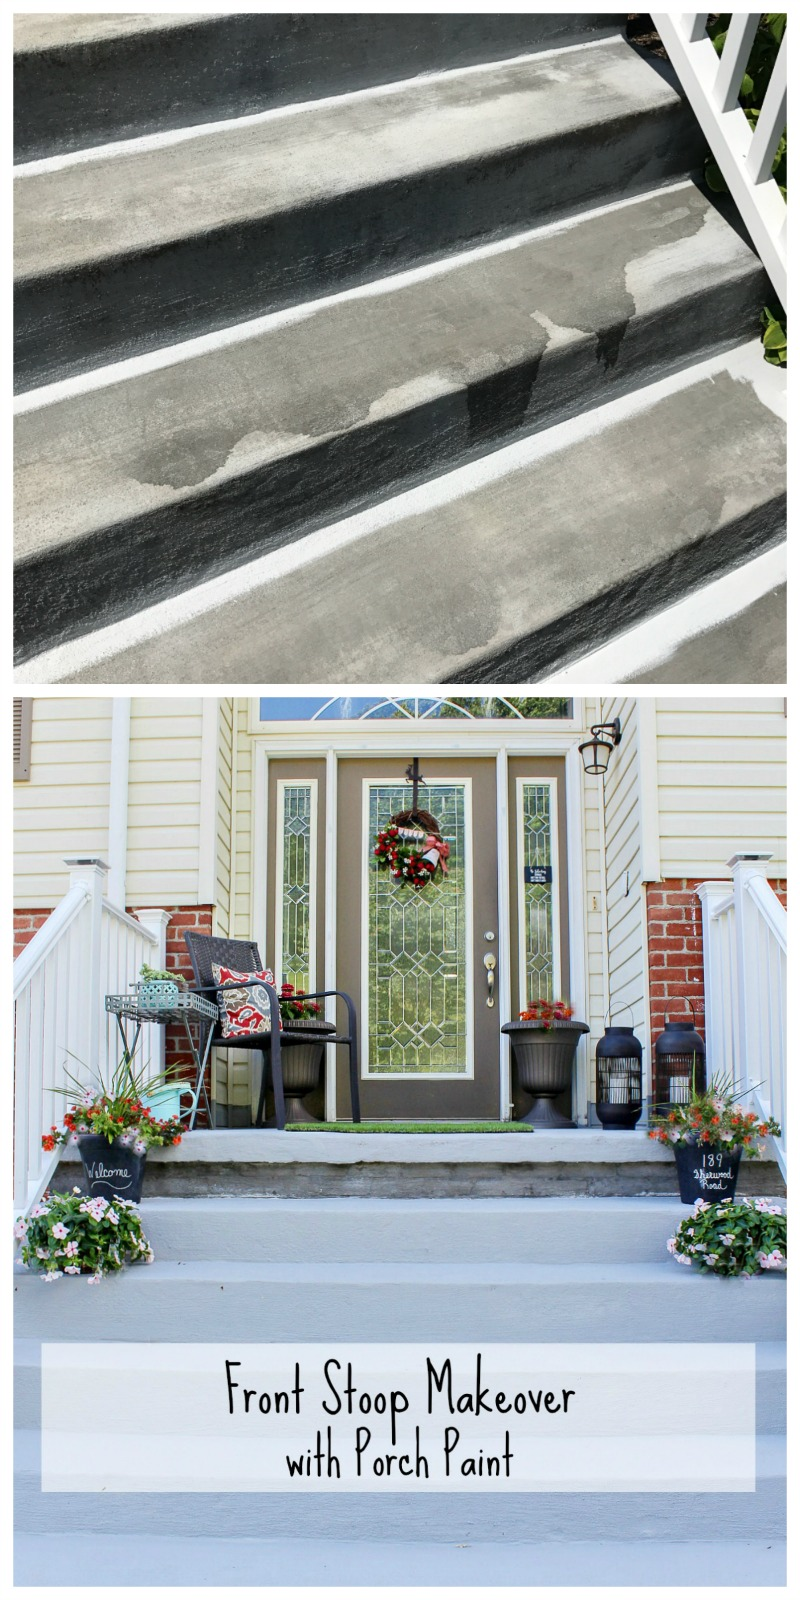 Over the summer, we did a little front stoop makeover with porch paint, and it completely transformed the look of our front stoop!